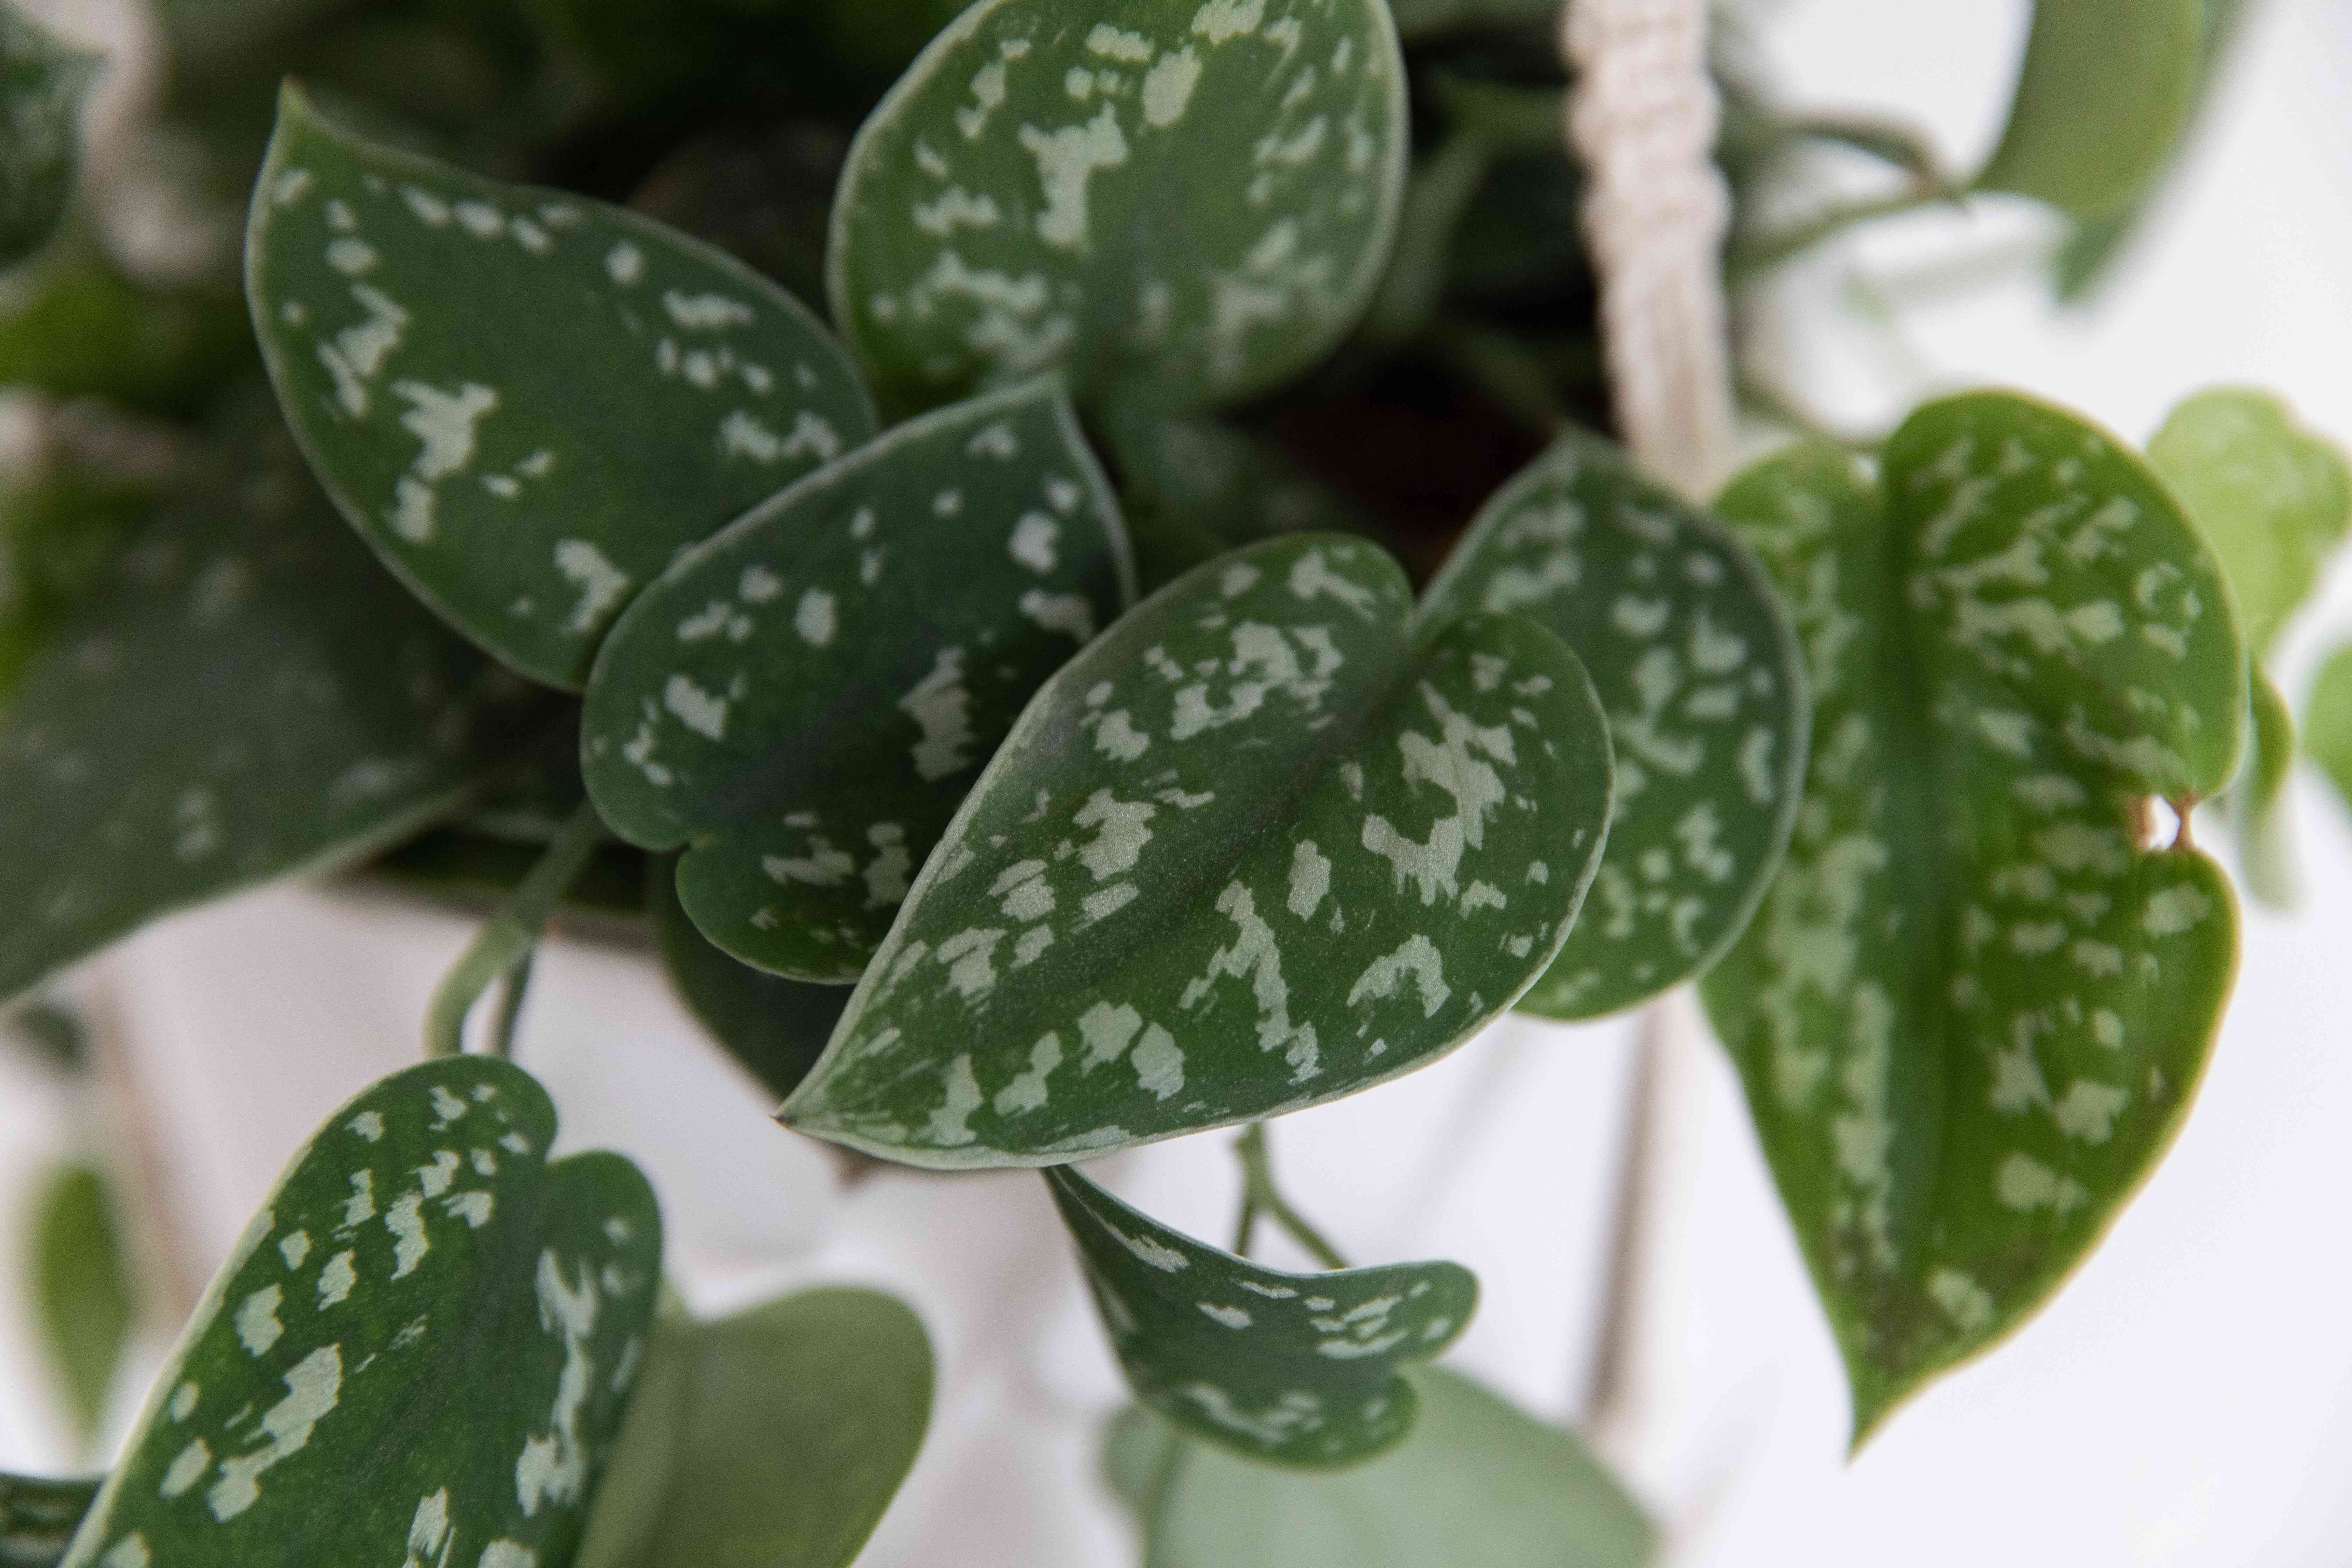 Satin pothos with spotted leaves closeup